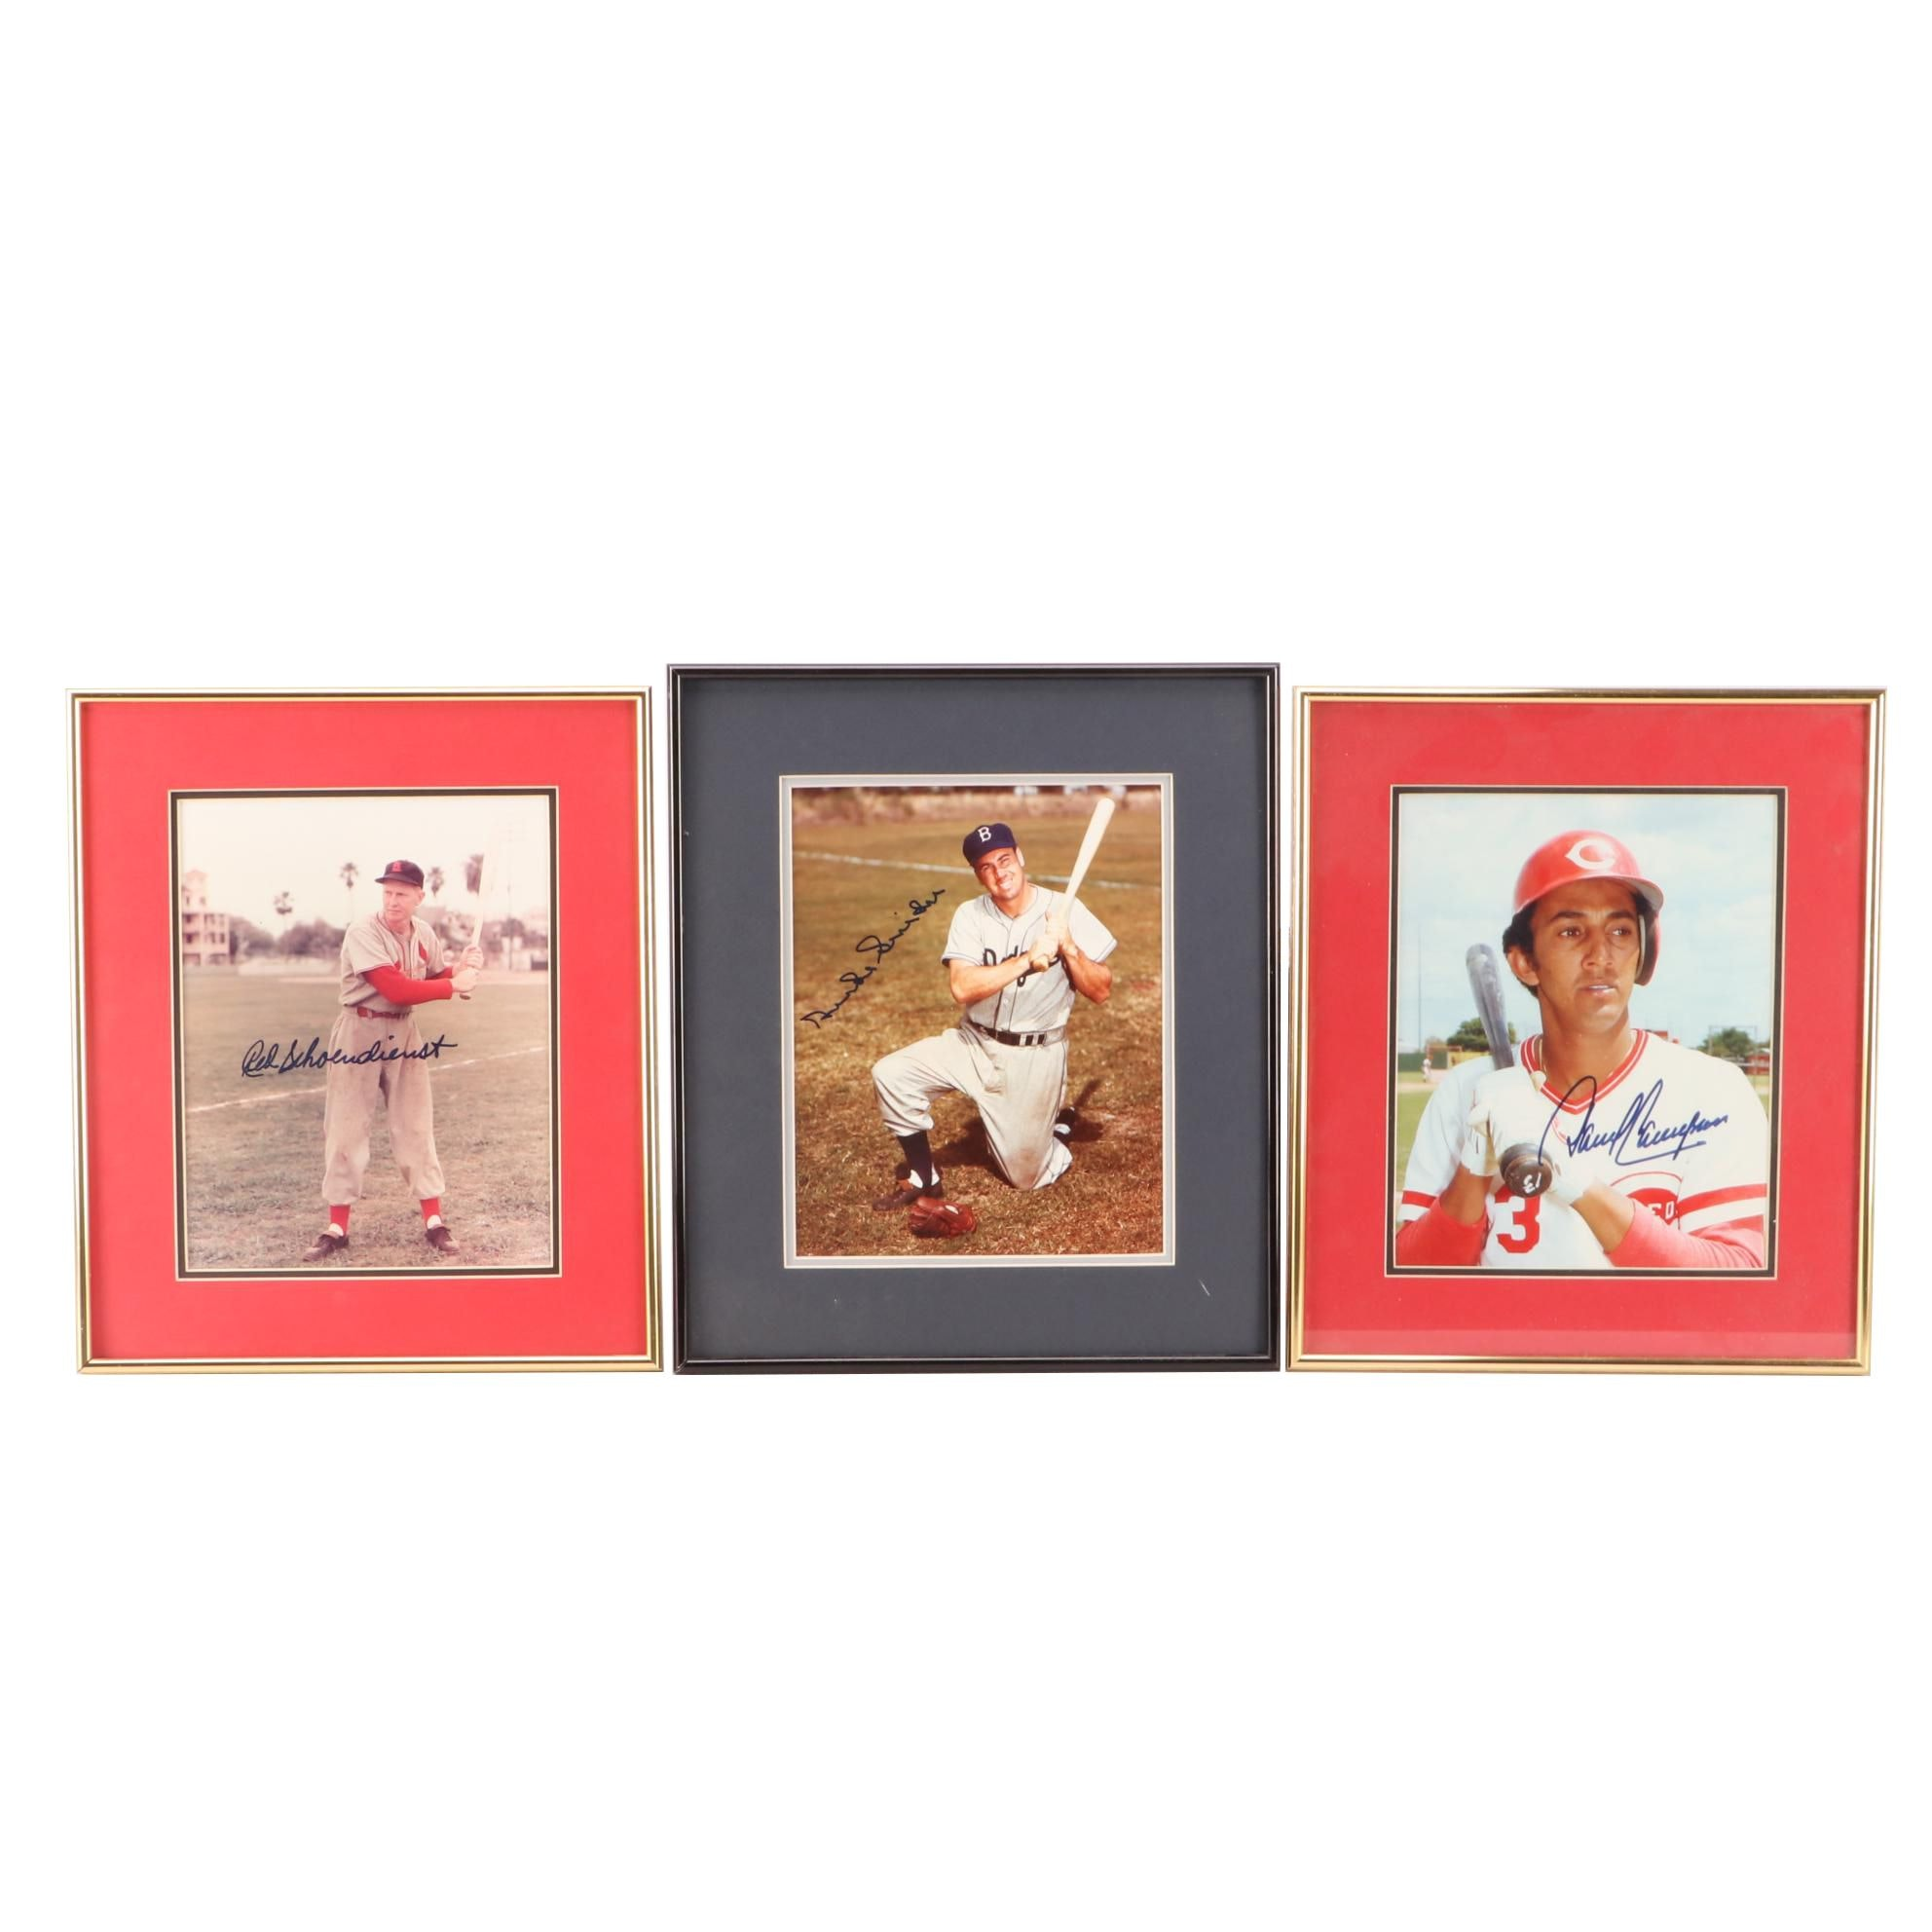 Concepcion, Snider, and Schoendienst Signed Framed Baseball Photo Prints